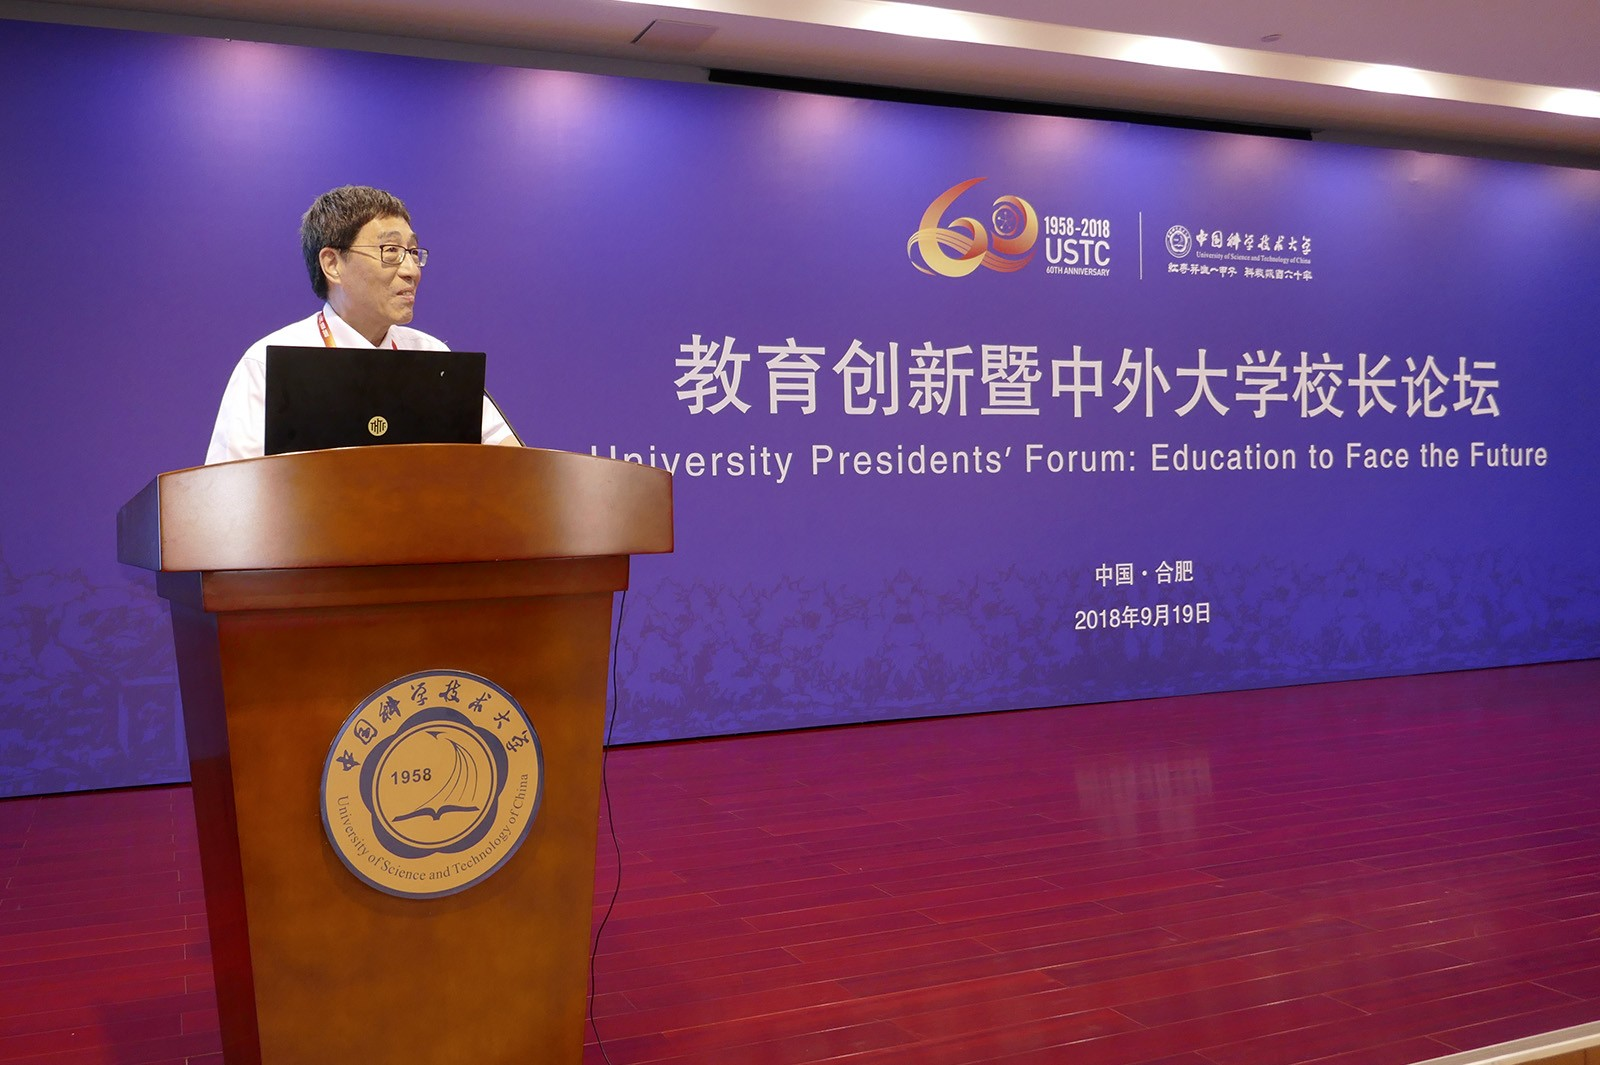 Professor Kuo delivers a talk at the University Presidents' Forum: Education to Face the Future.